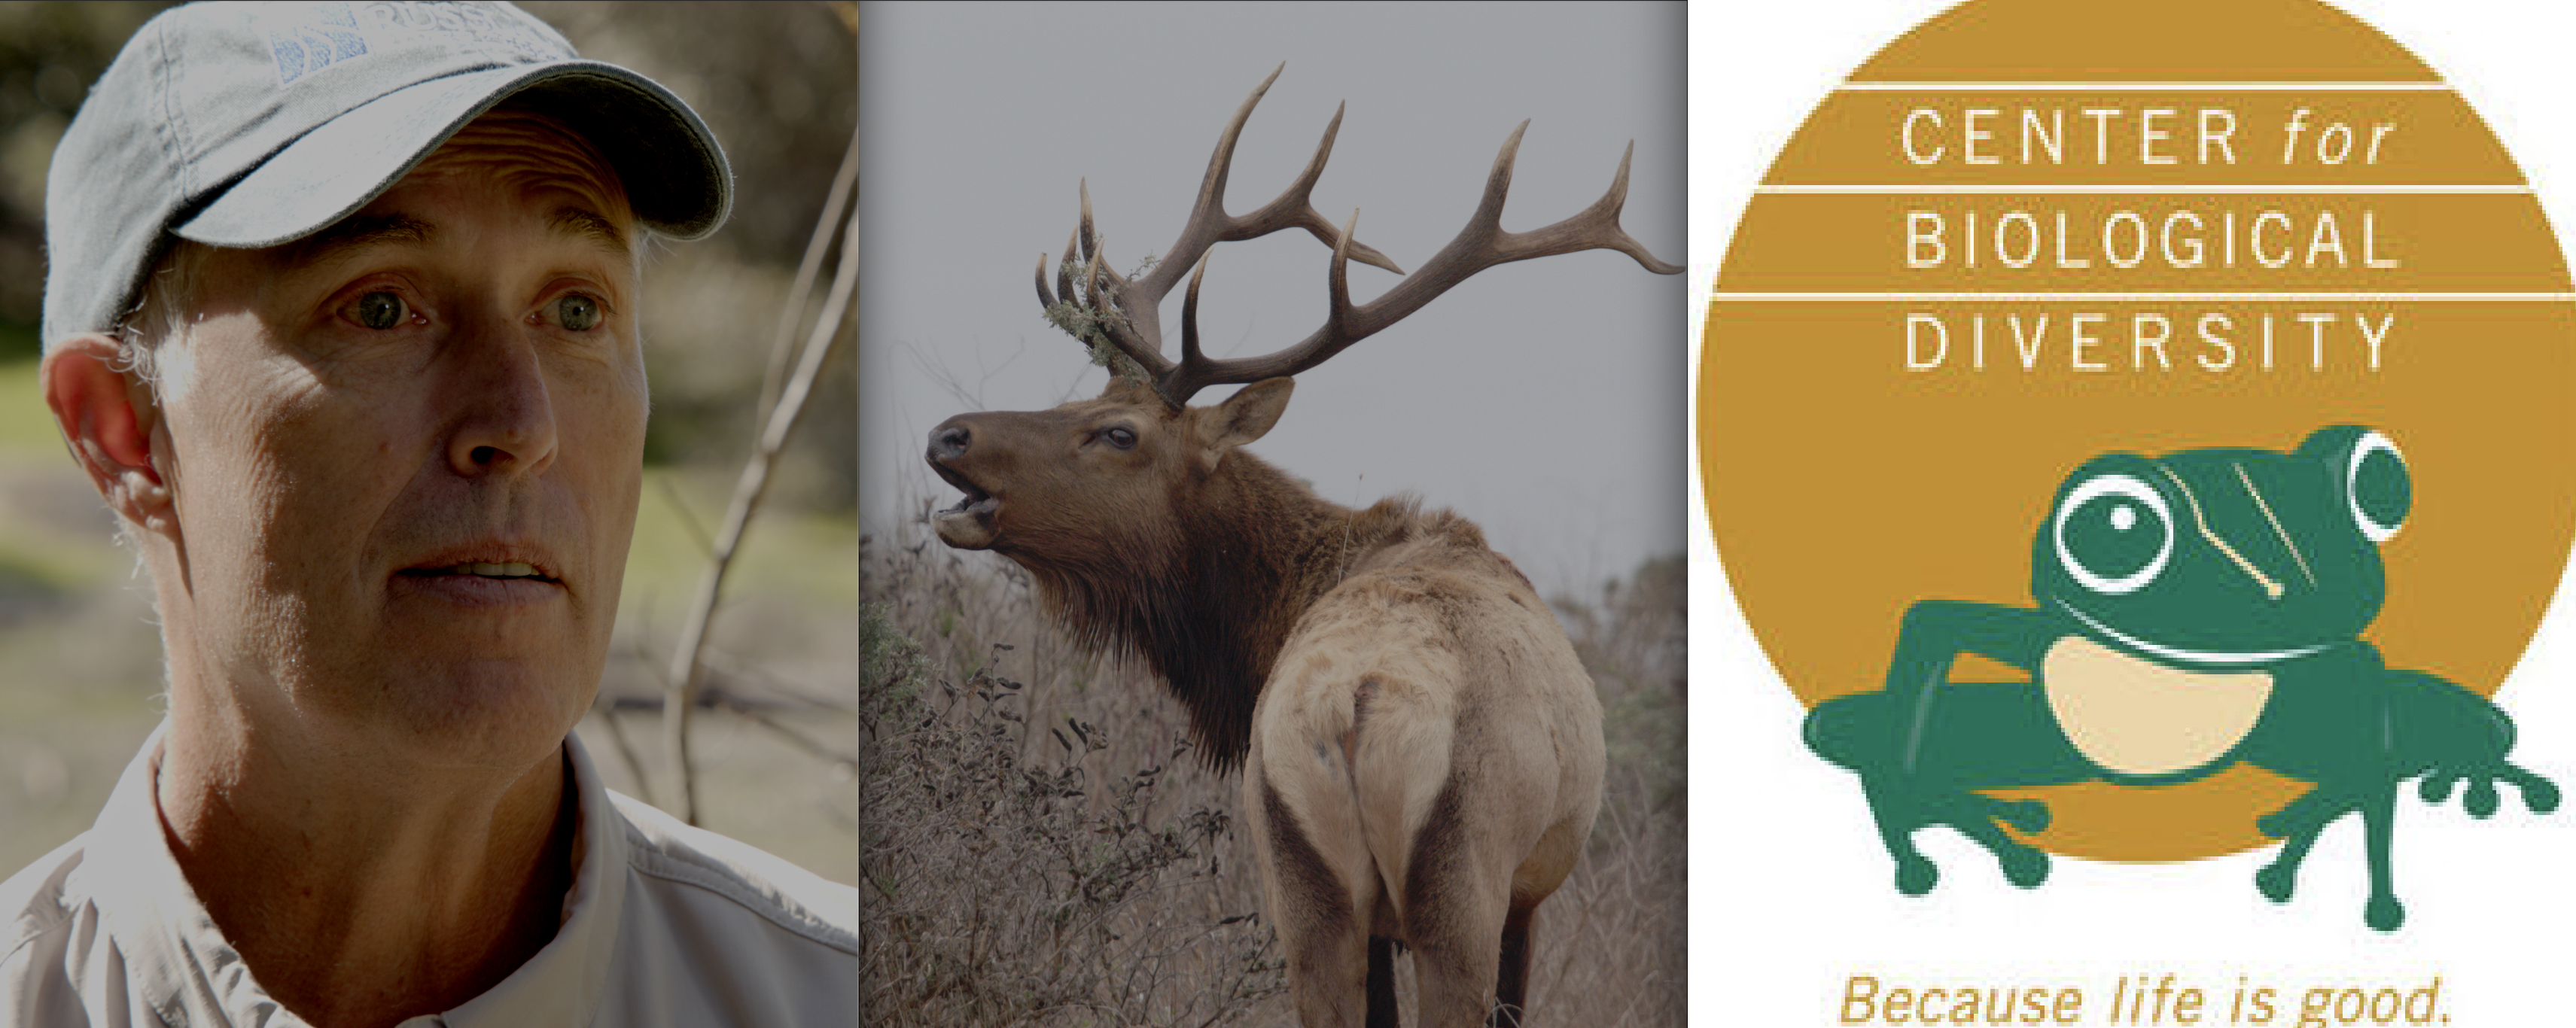 Center for Biological Diversity Lambasts Rep. Jared Huffman in Scathing Rebuke over Tule Elk Comments in Letter to The Editors